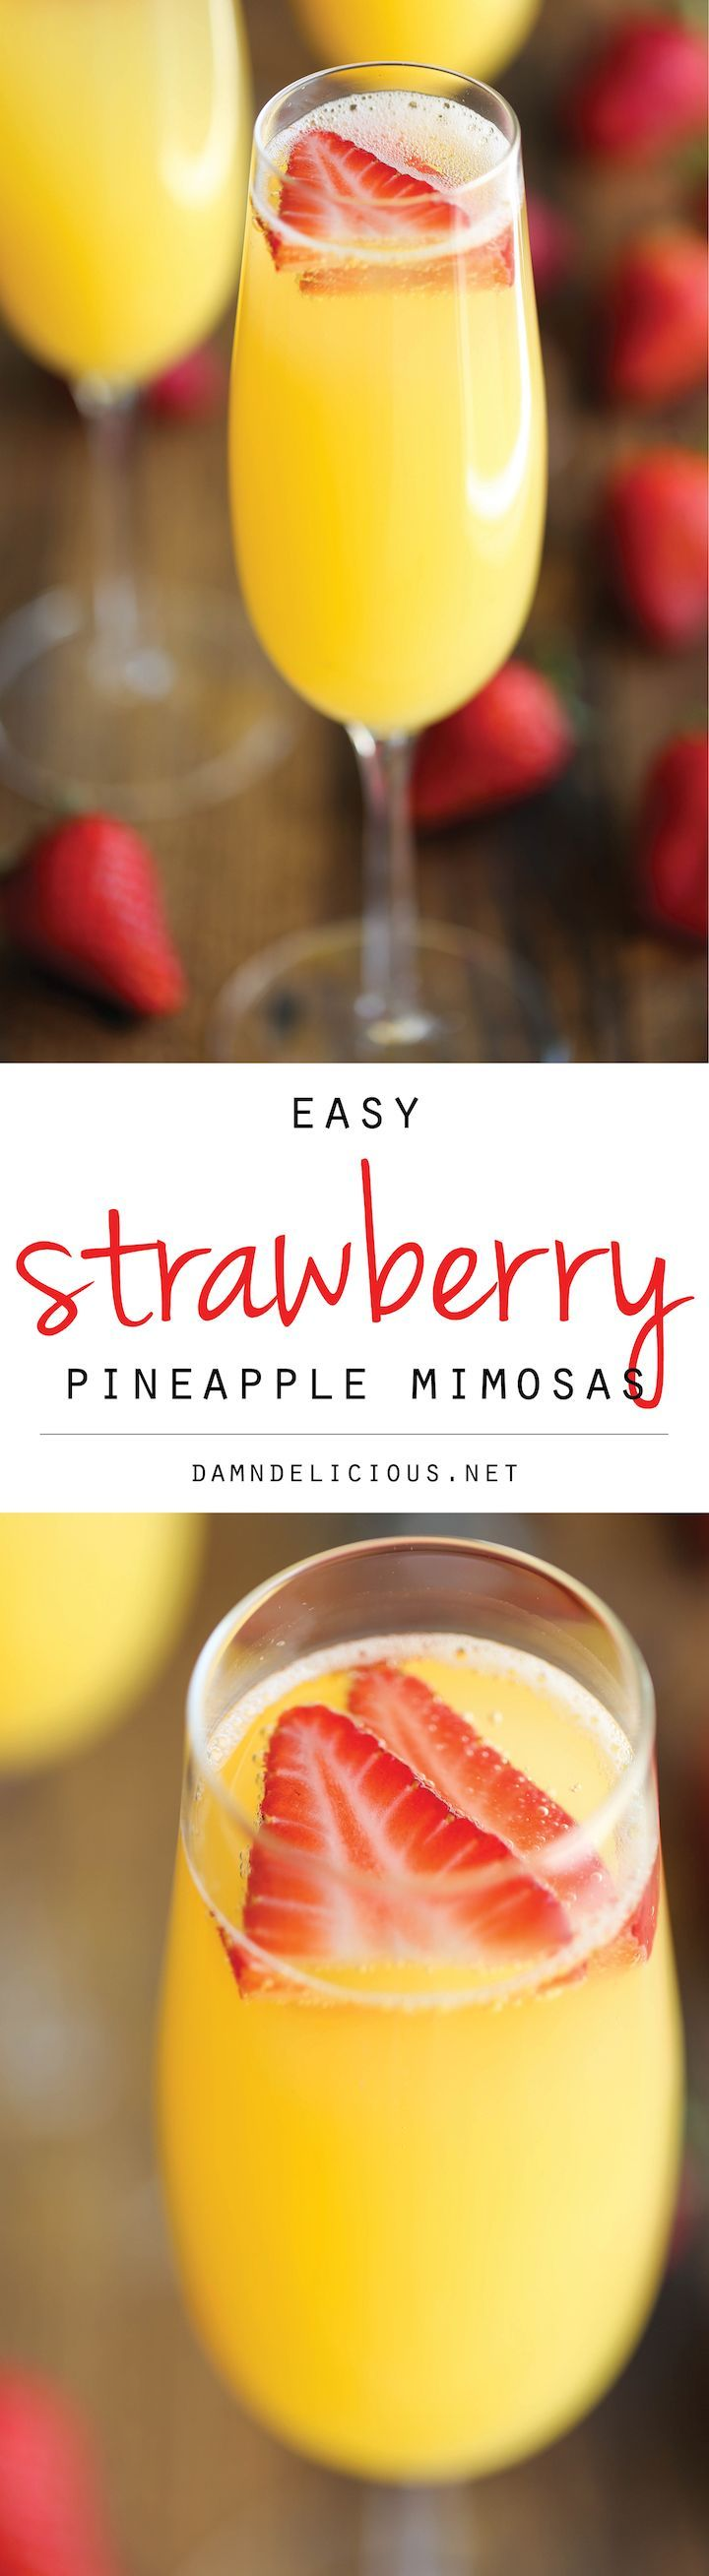 Mom-osas - use sparkling white grape juice for baby shower! Strawberry Pineapple Mimosas - The easiest, quickest, and best 4-ingredient mimosa ever. And all you need is just 5 min to whip this up!